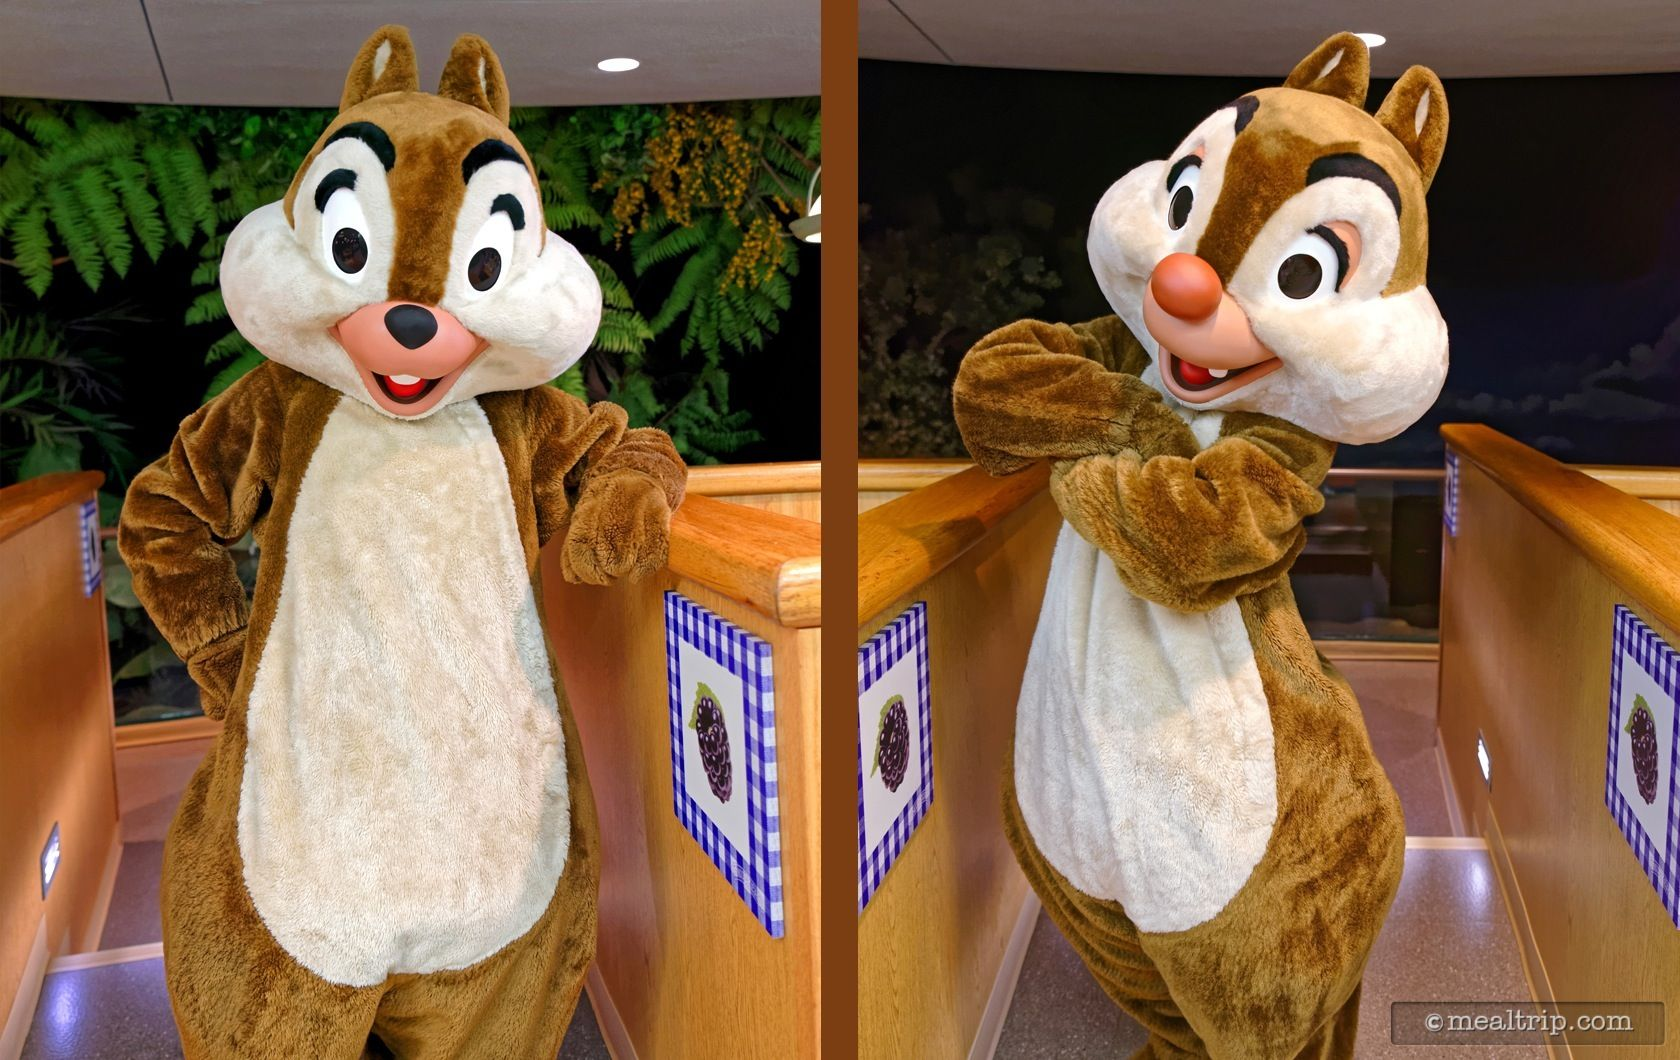 chip-and-dale-at-the-garden-grill-epcot-dinner.jpg 1,680×1,060 ...